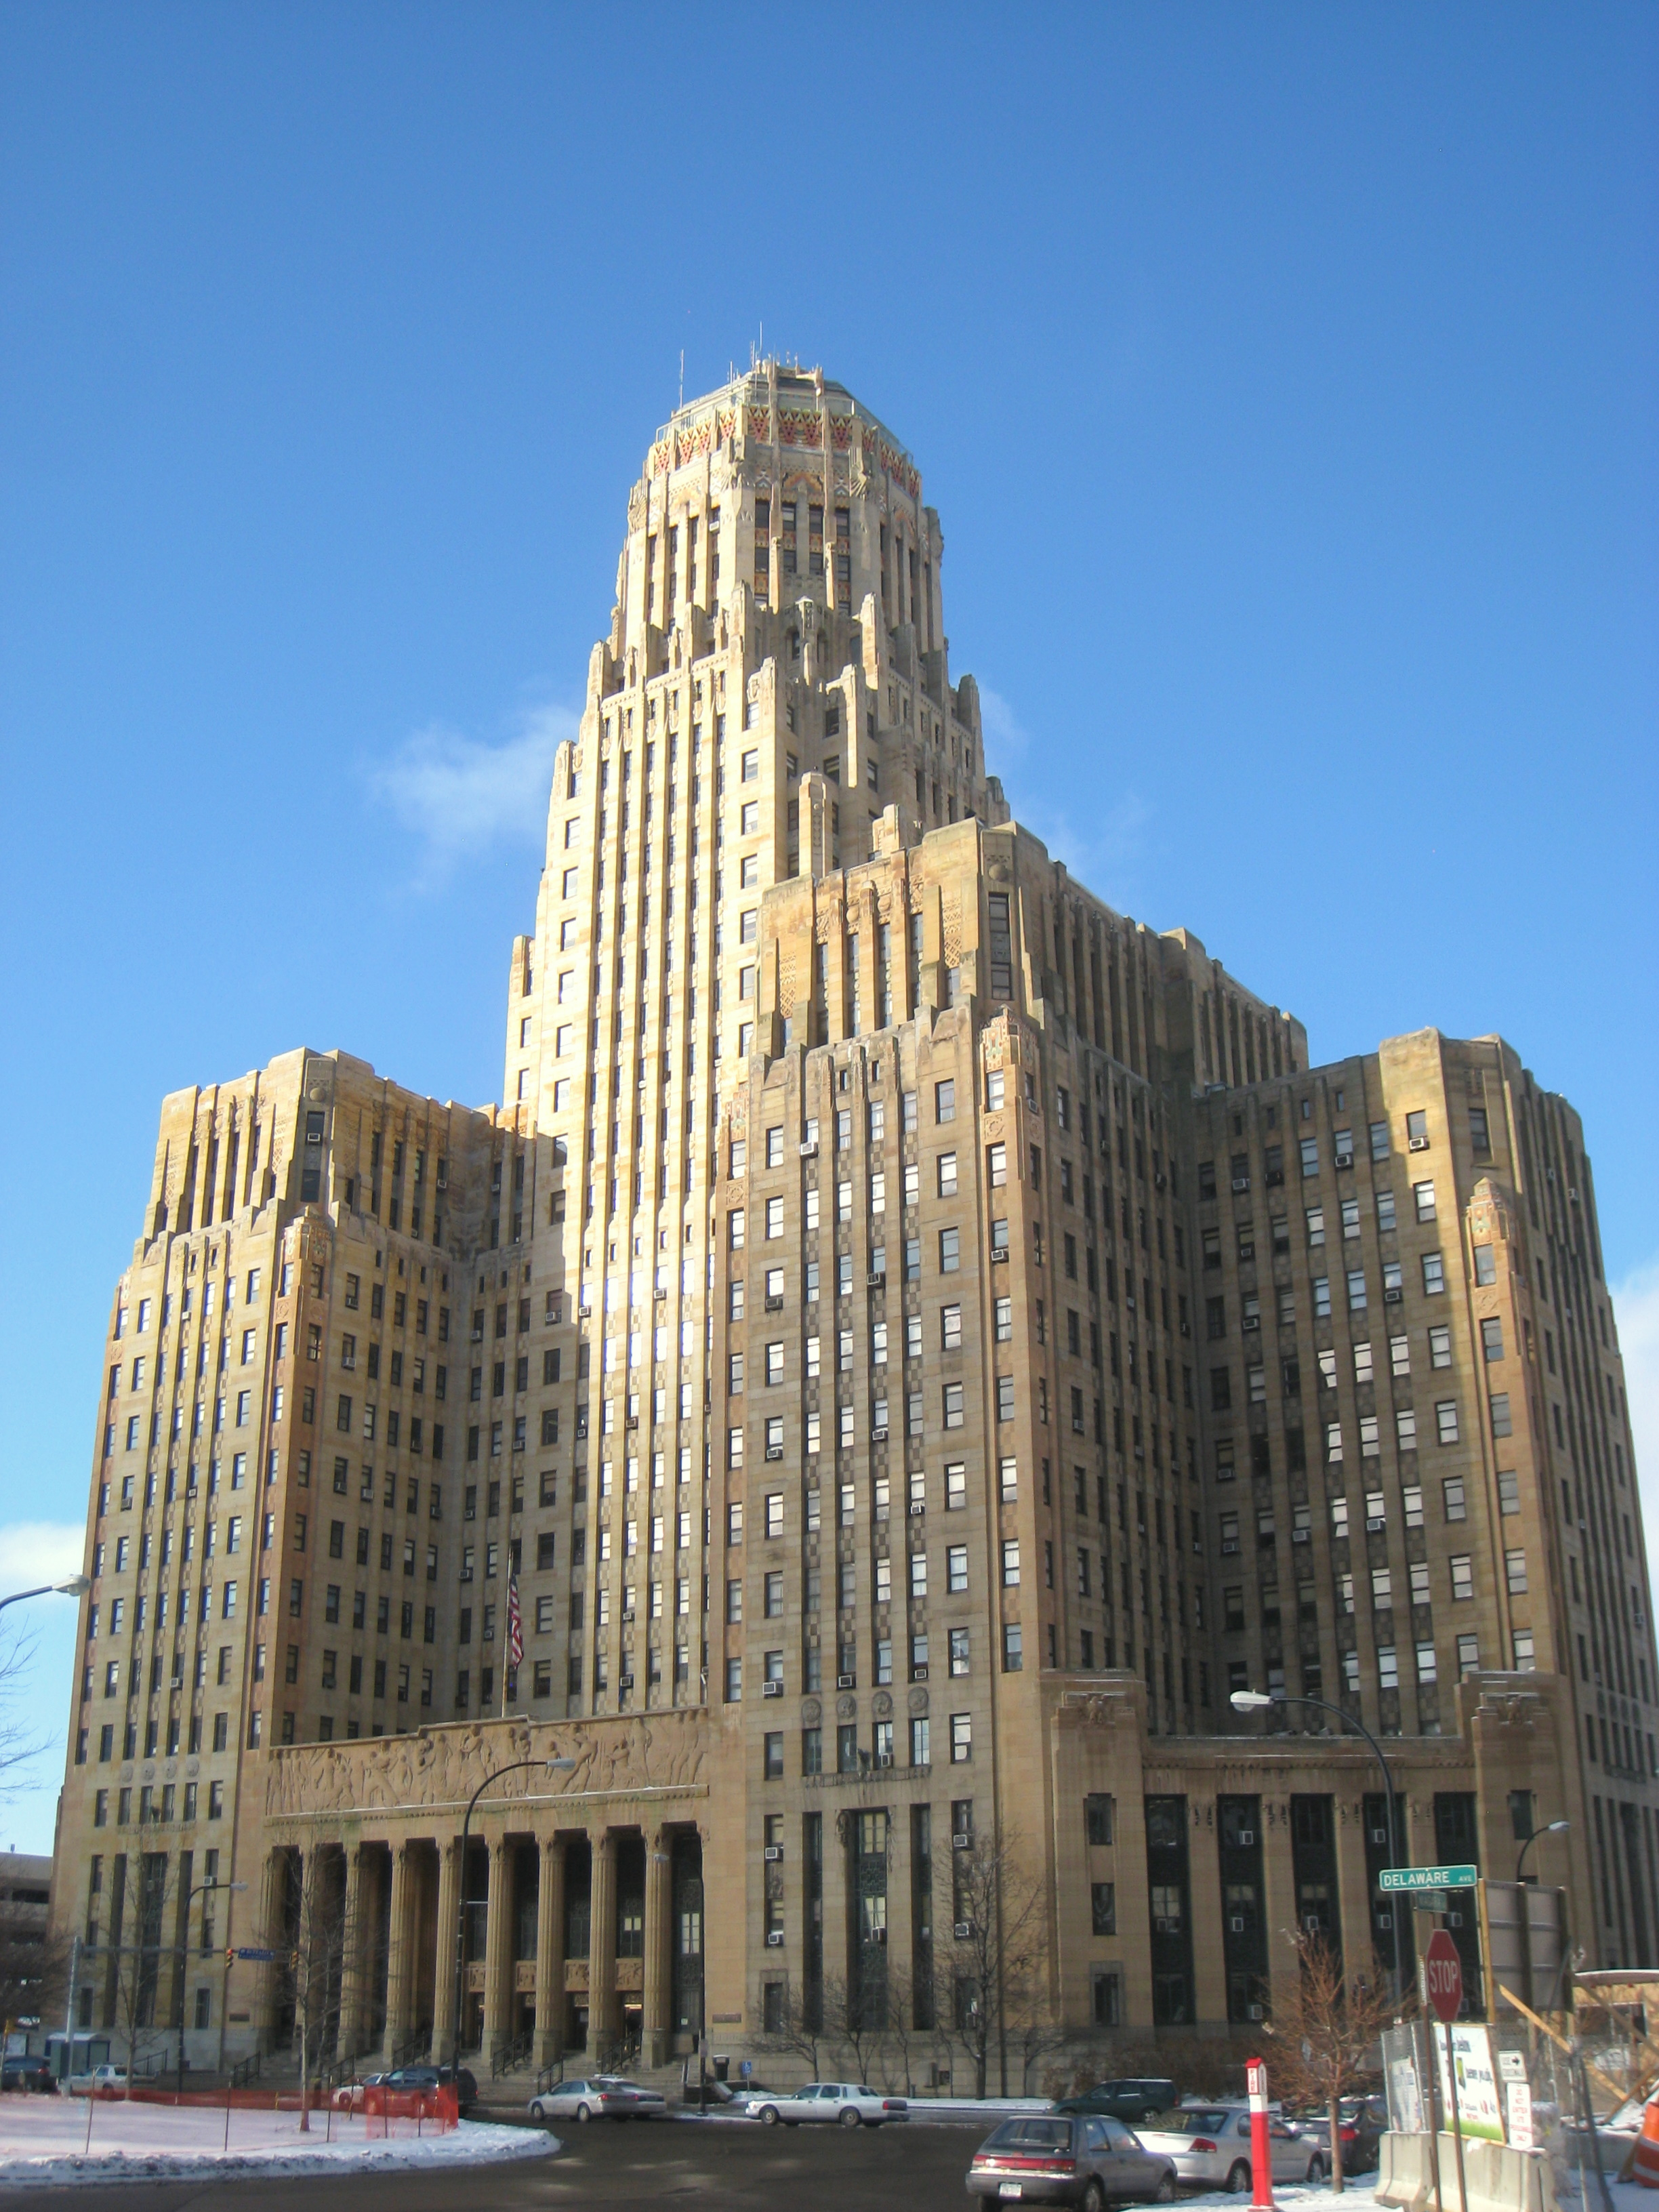 Category: Landmarks and Buildings